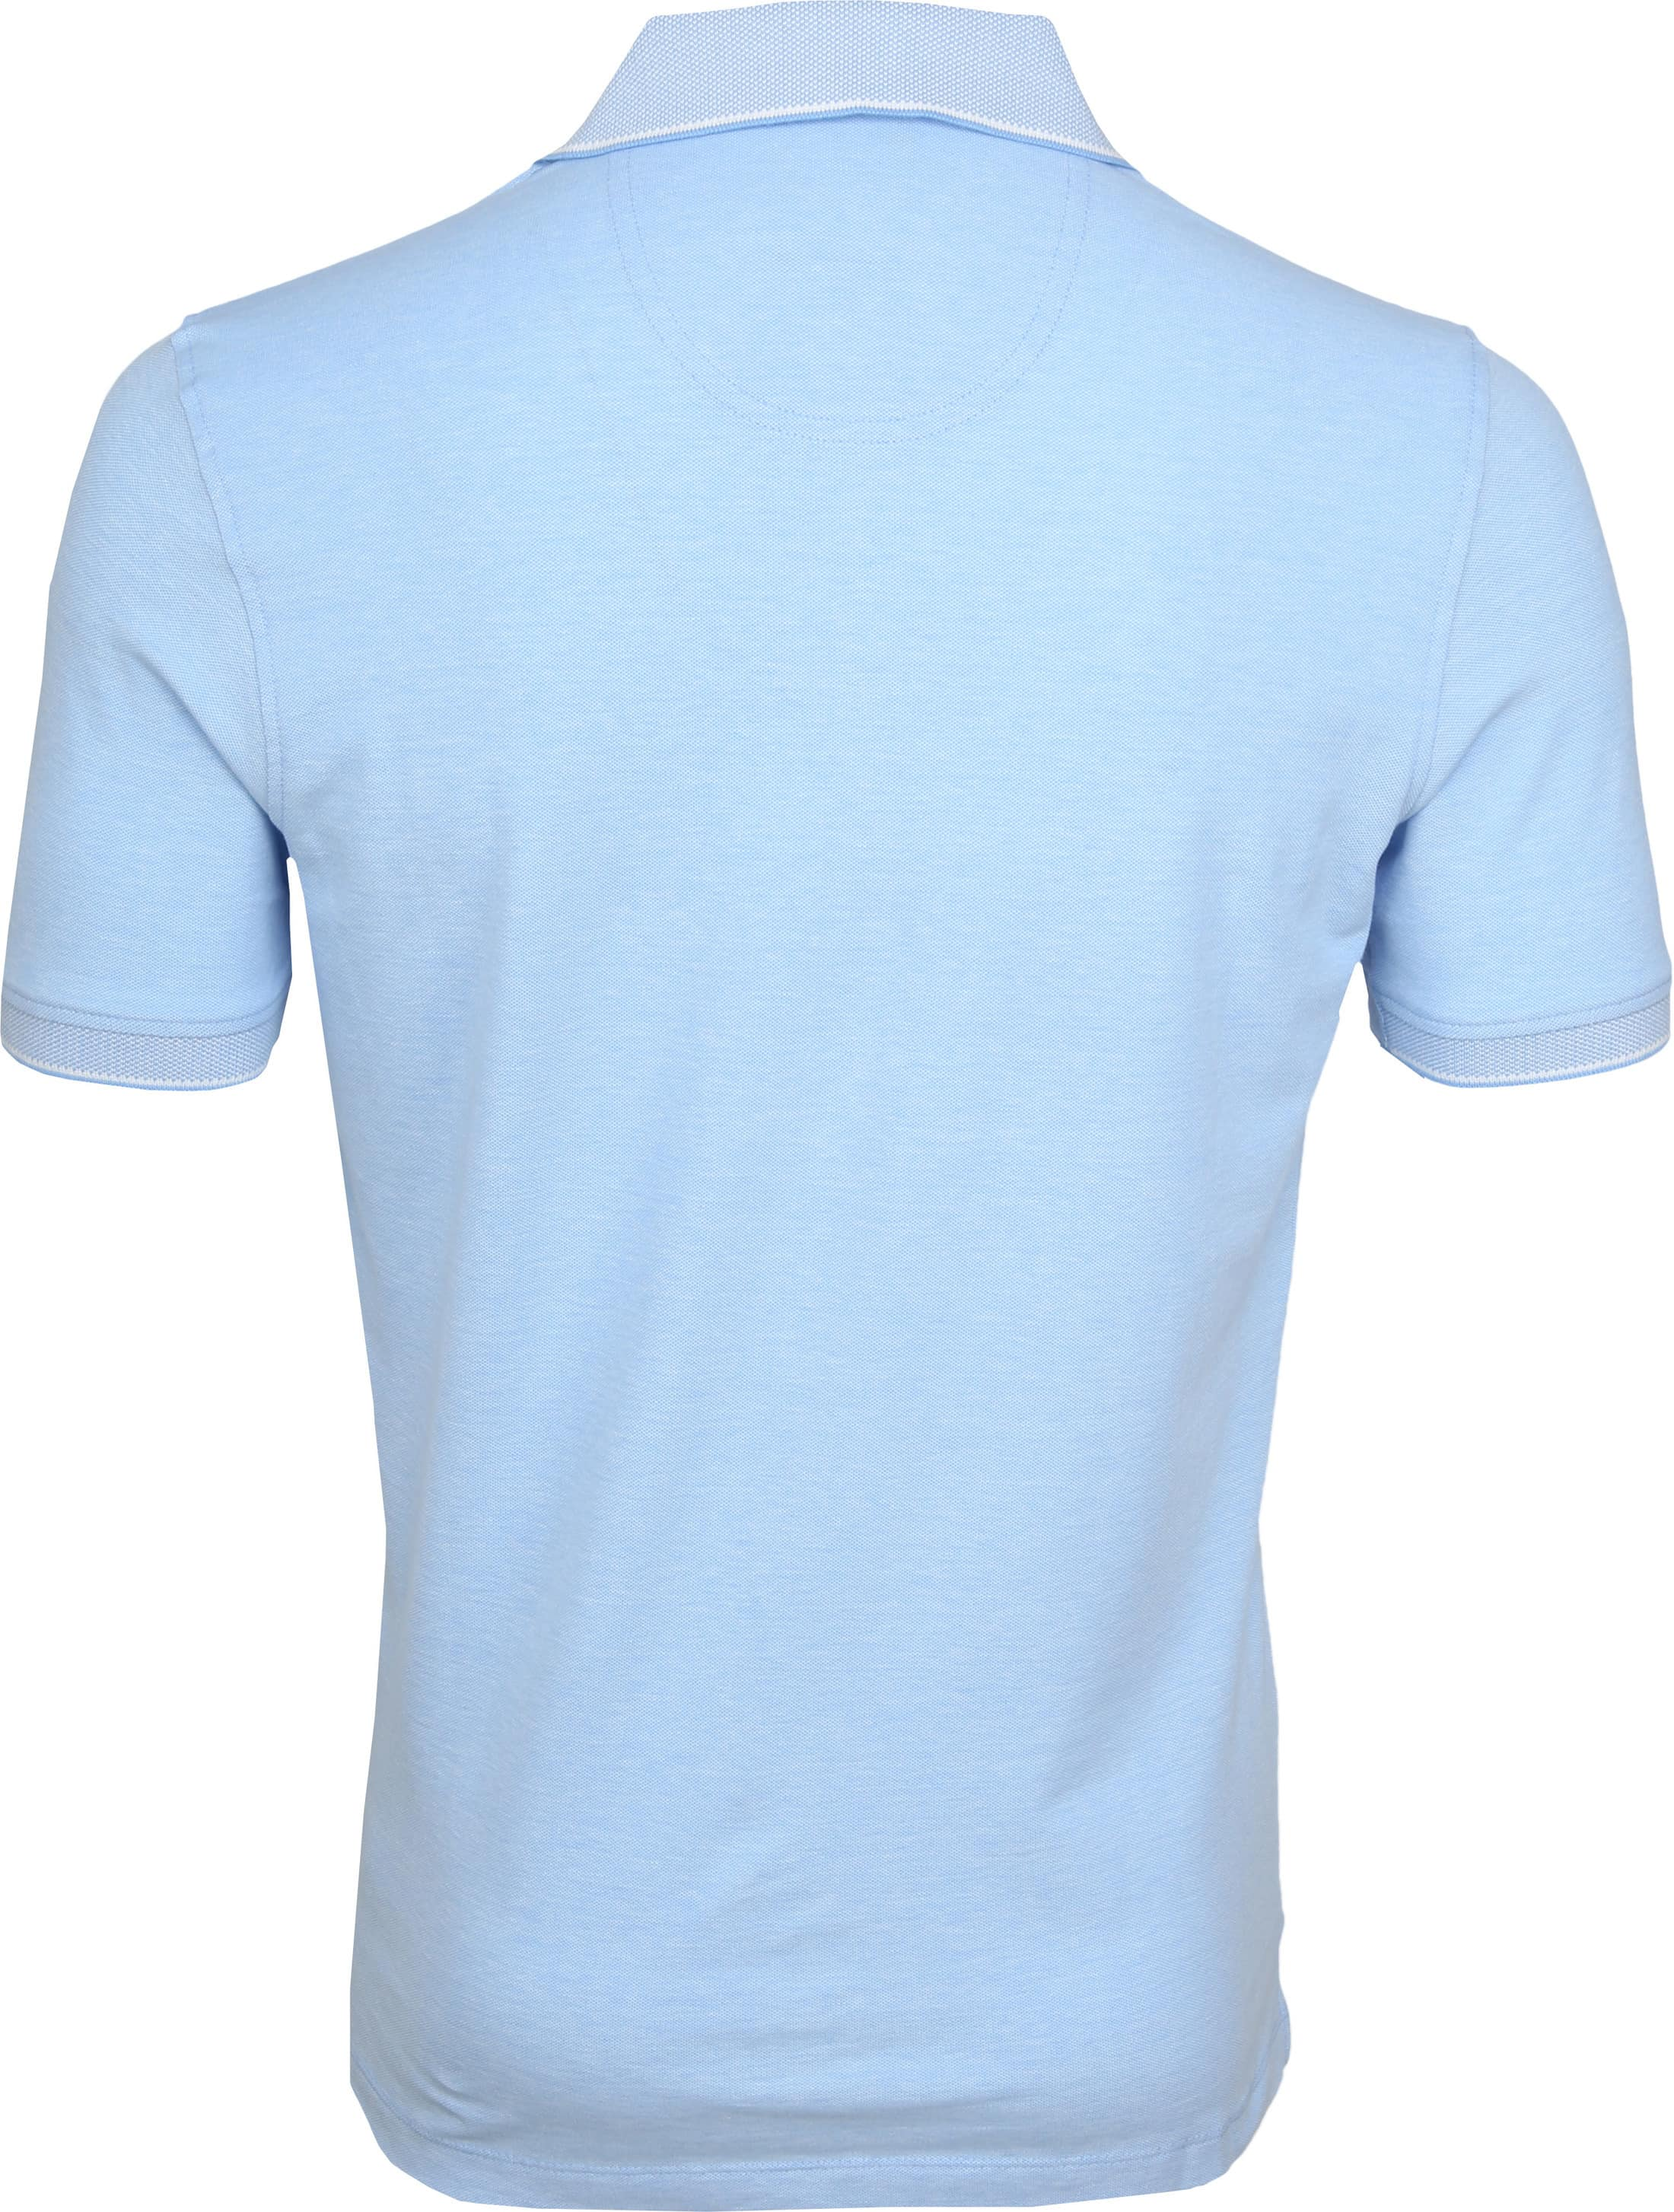 Suitable Melange Poloshirt Light Blue foto 3